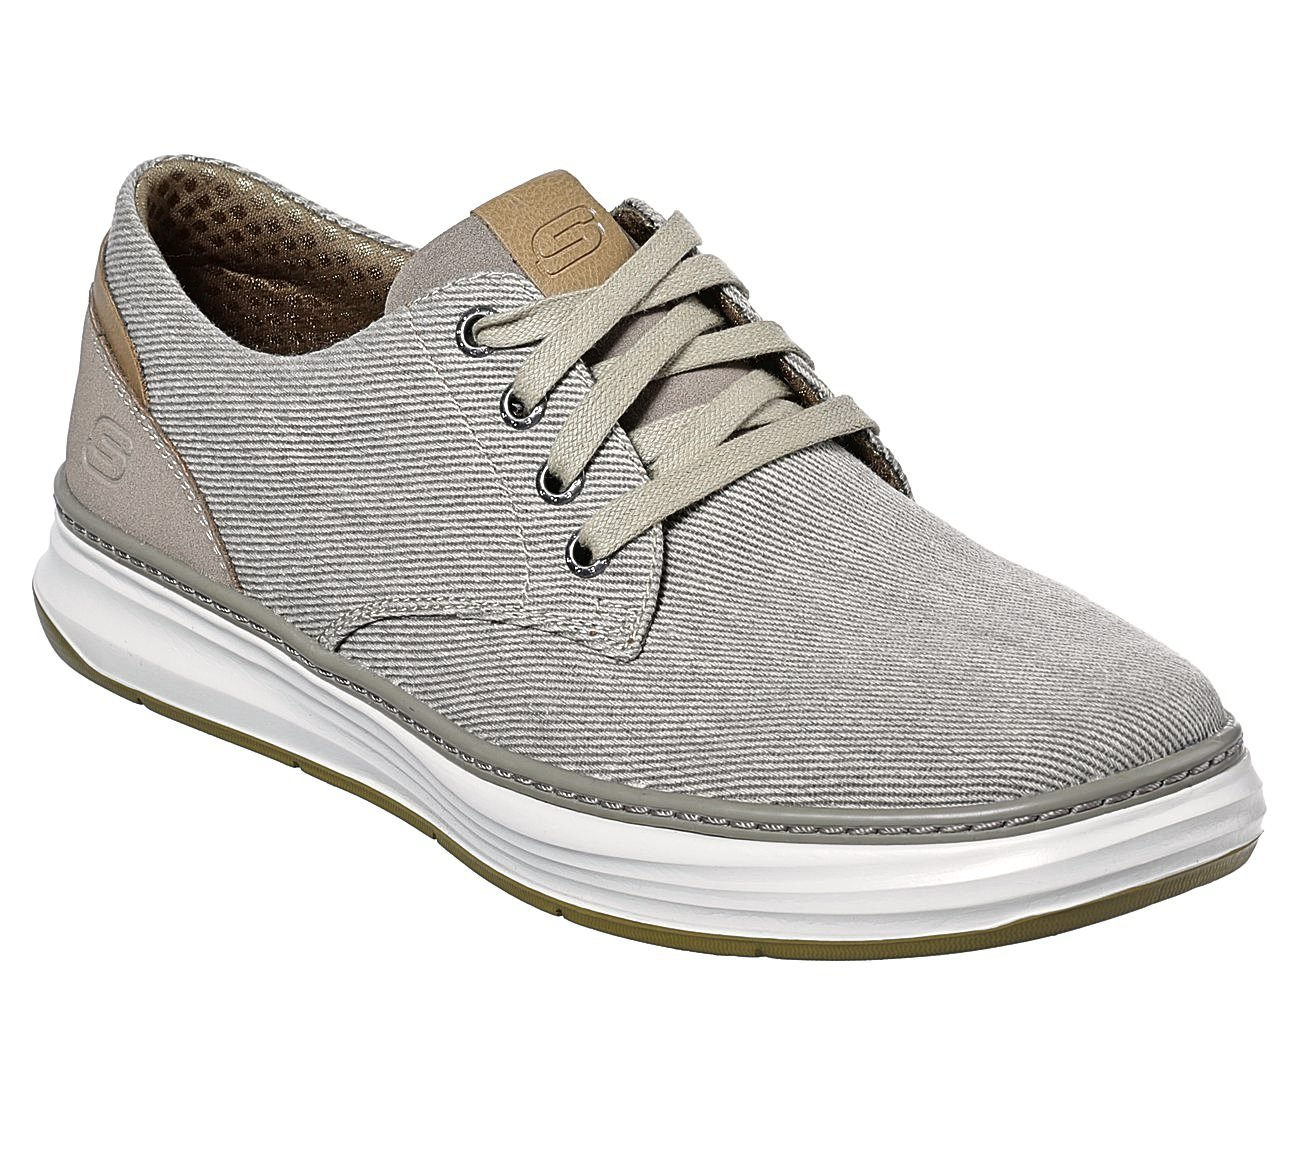 best sneakers to wear with business casual